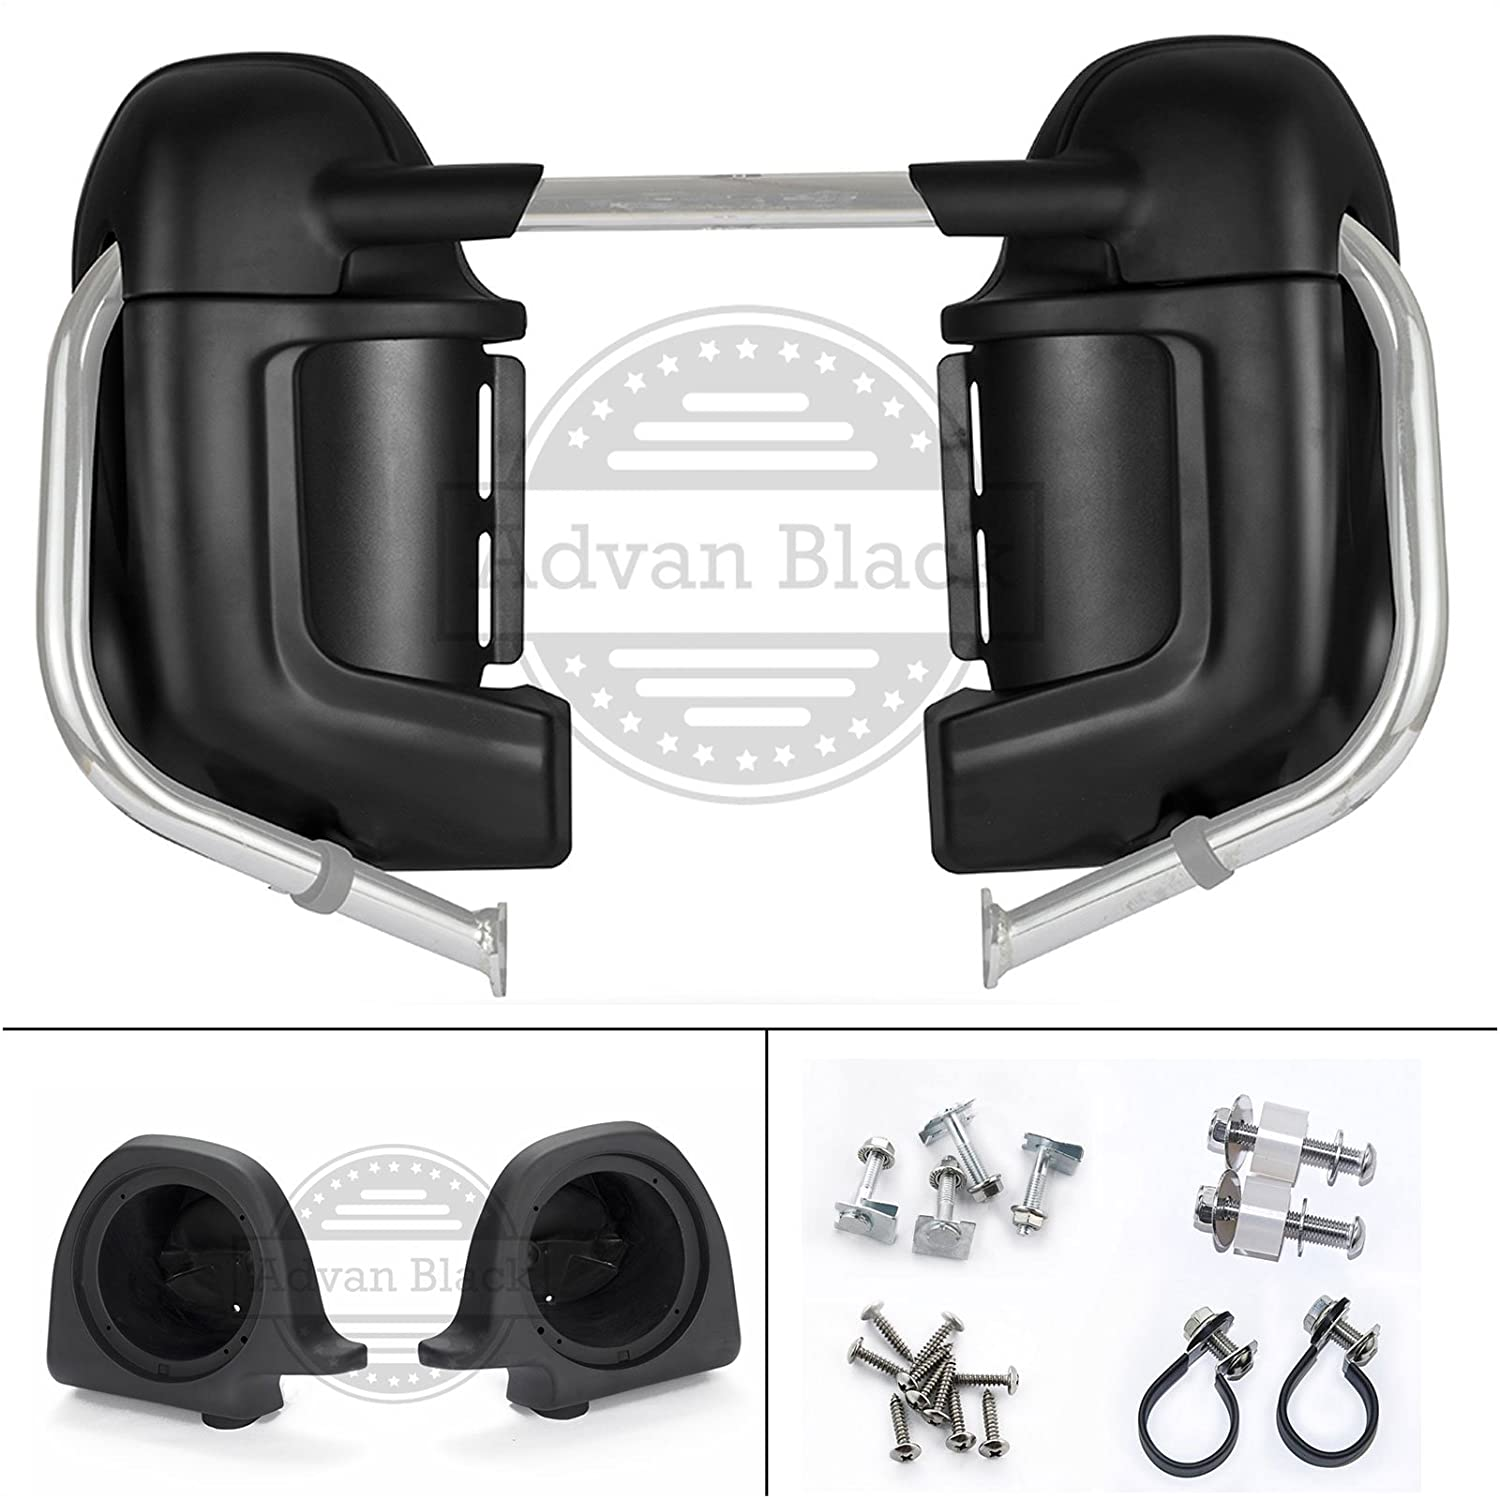 Advanblack Big Blue Pearl Lower Vented Fairings Kit with 6.5 Inch Speaker Box Pods Fit for Harley Touring Street Glide Road King Electra Glide 1983-2013